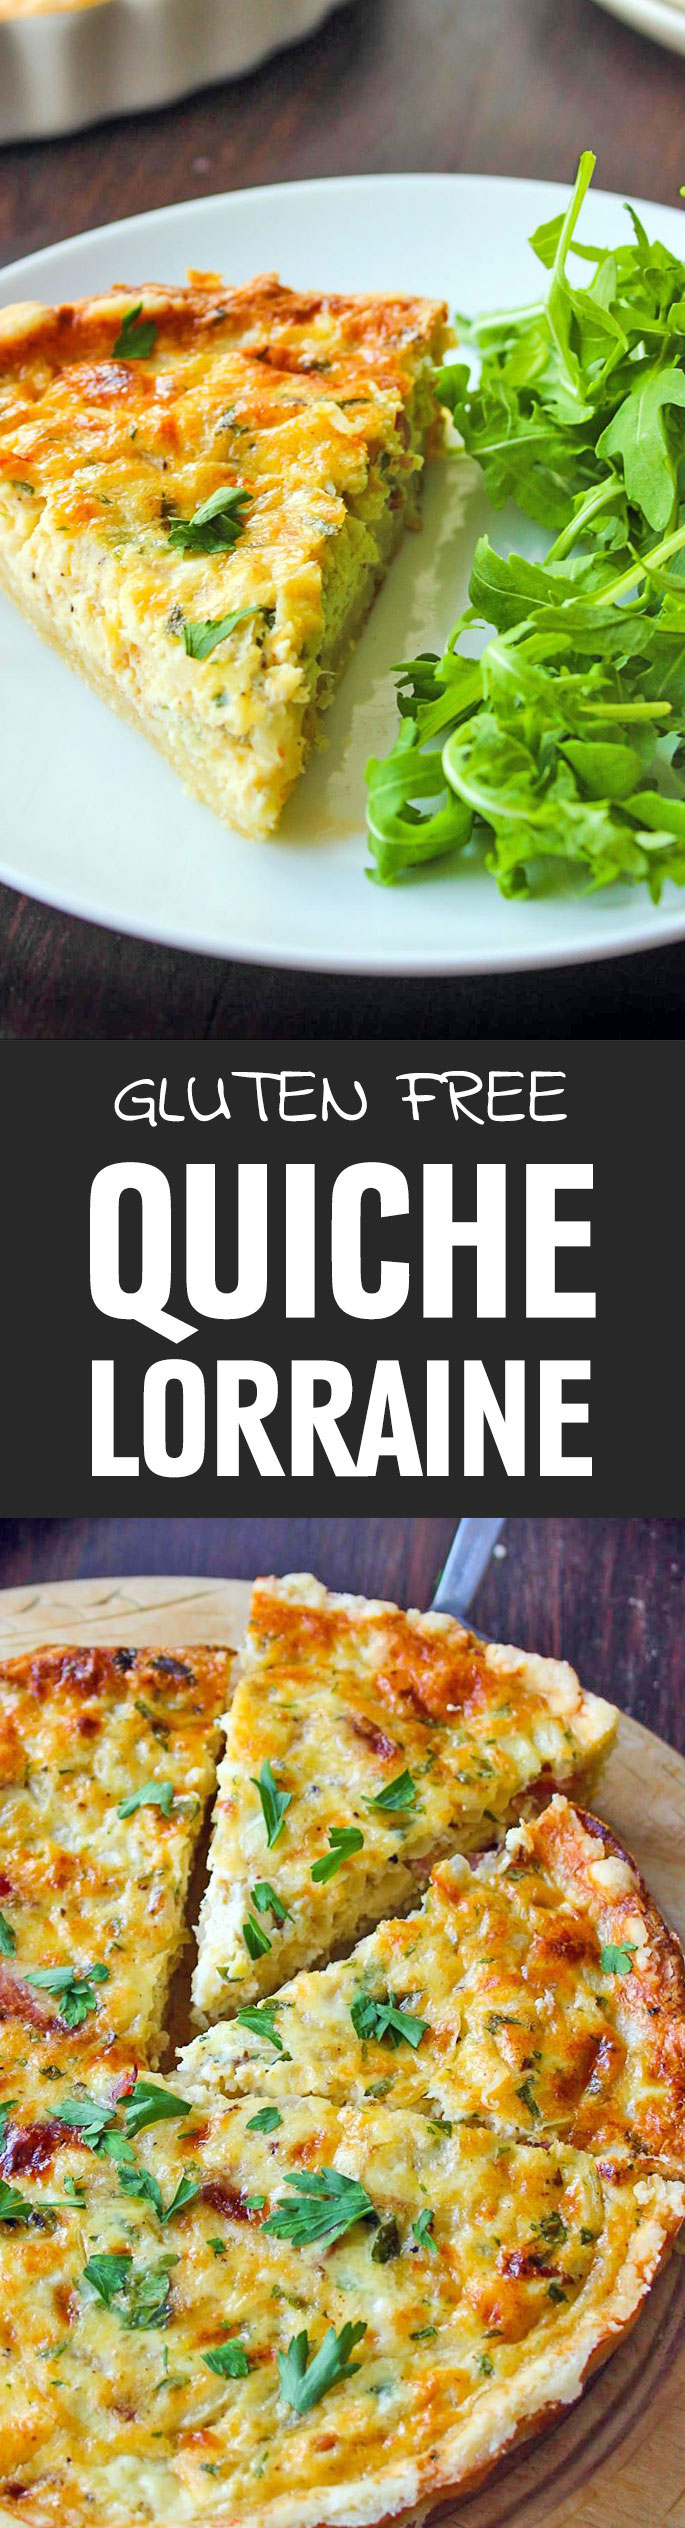 Quiche is one of those foods that we always forget how much we enjoy until eating it. All it takes is one bite of that rich, custardy filling sitting on top of a flaky piecrust and we're sold. Give it a try. Shared via http://www.gluteninsight.com